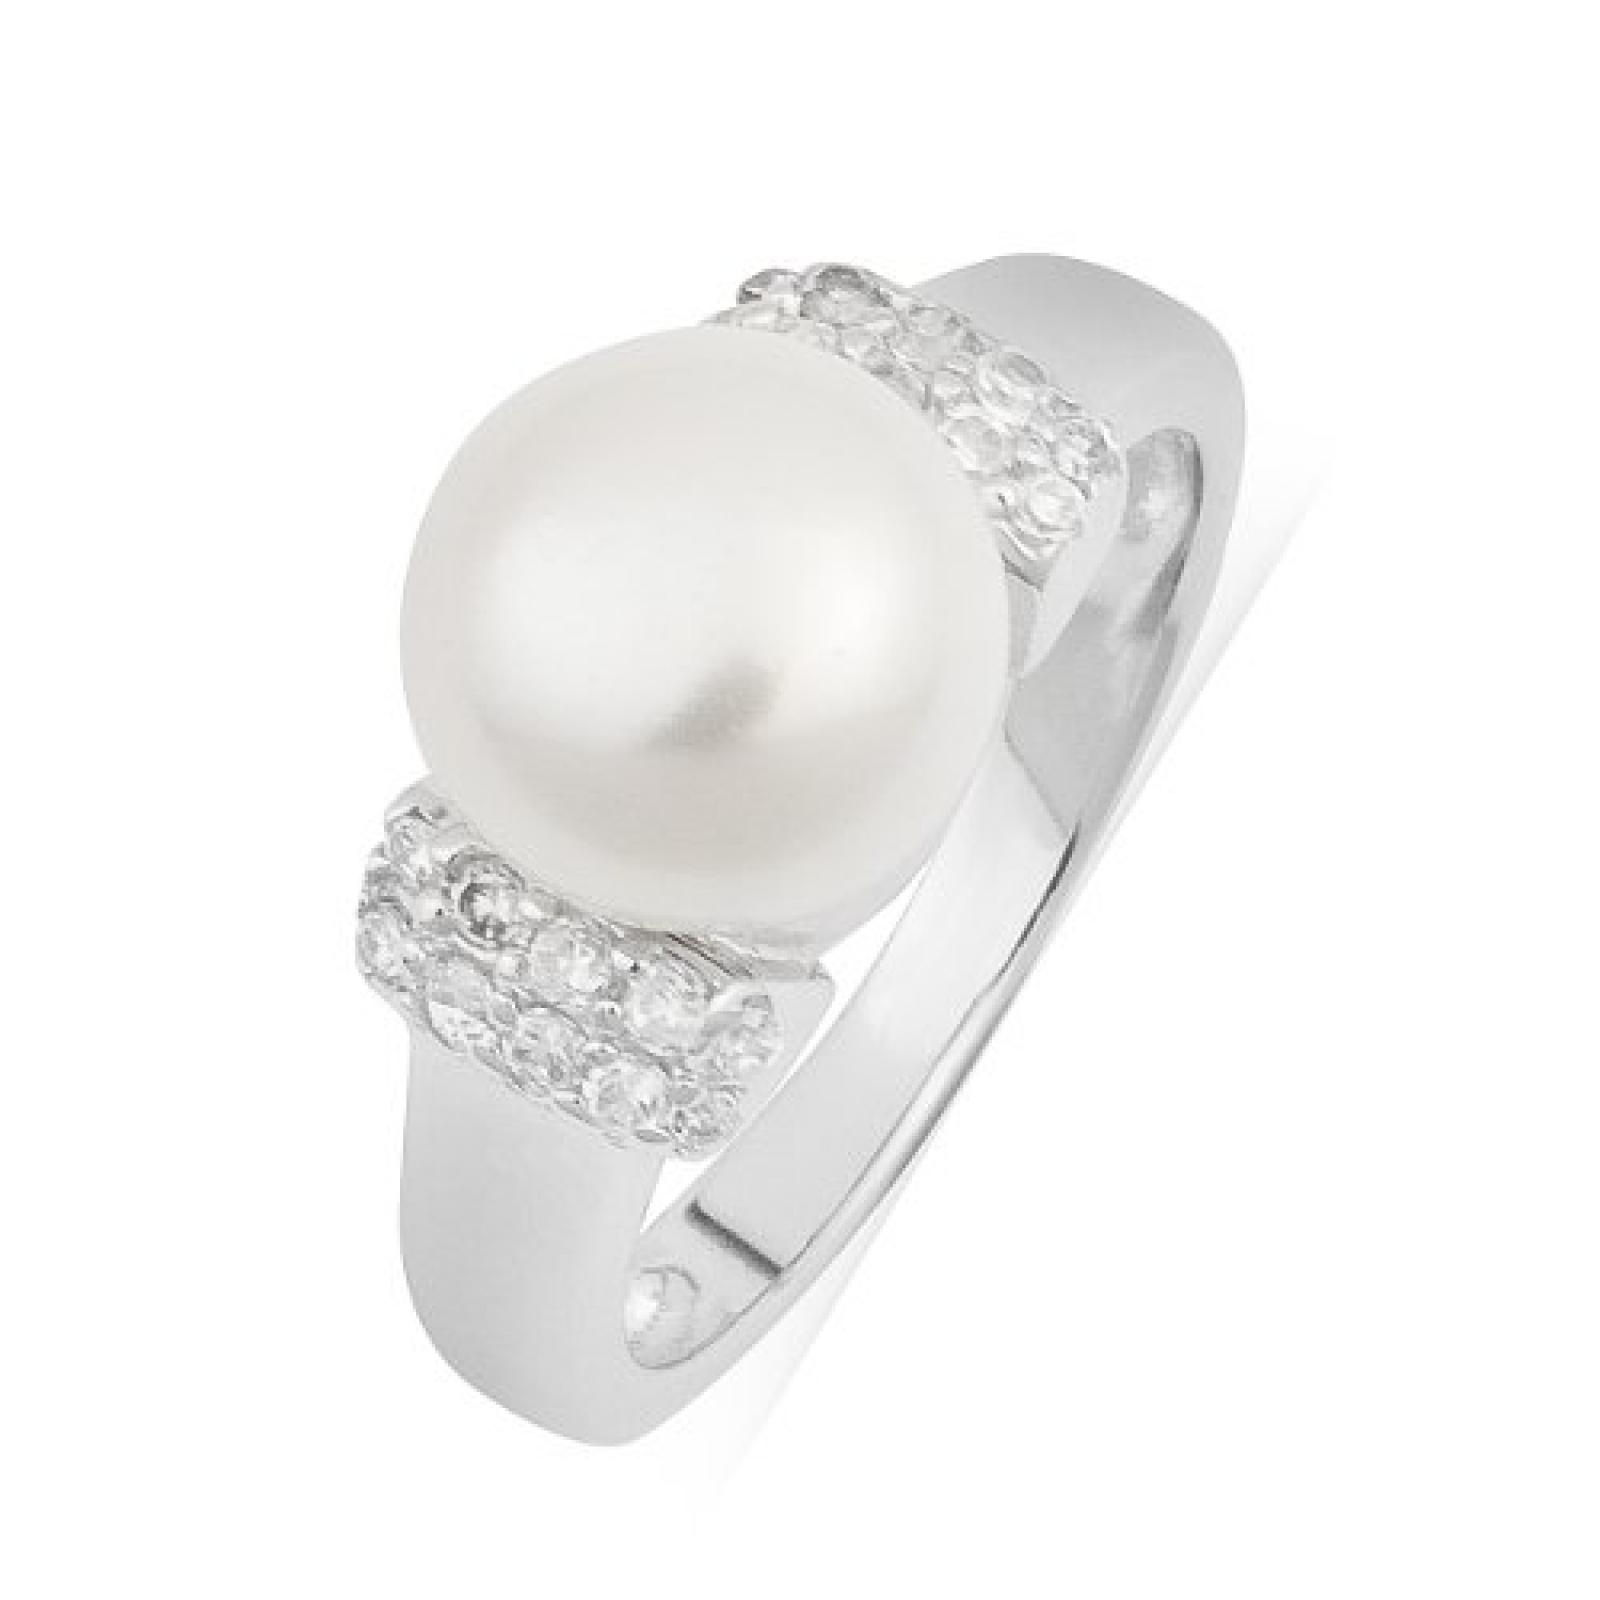 Valero Pearls Damen-Ring Silver Collection 925 Sterling Silber Süßwasser-Zuchtperlen Weiß 60201408